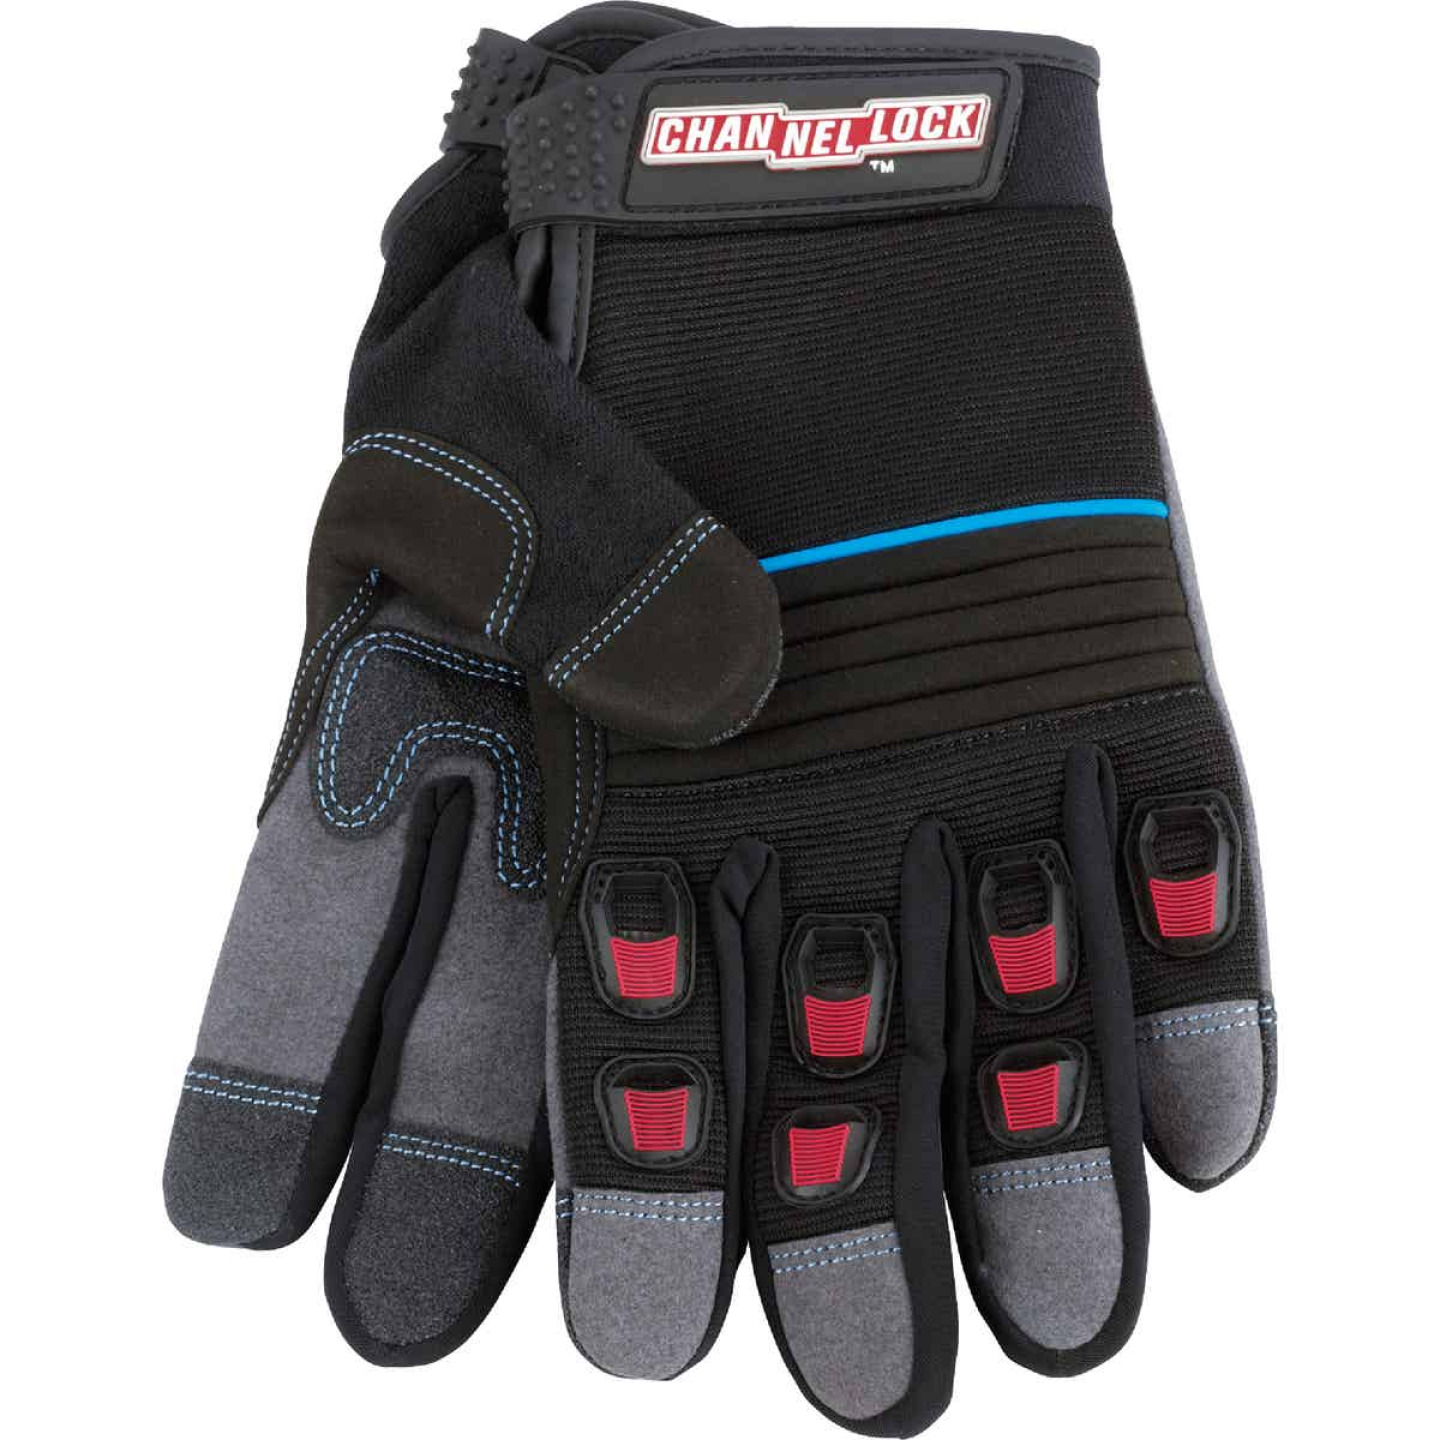 Channellock Men's XL Synthetic Leather Heavy-Duty High Performance Glove Image 3